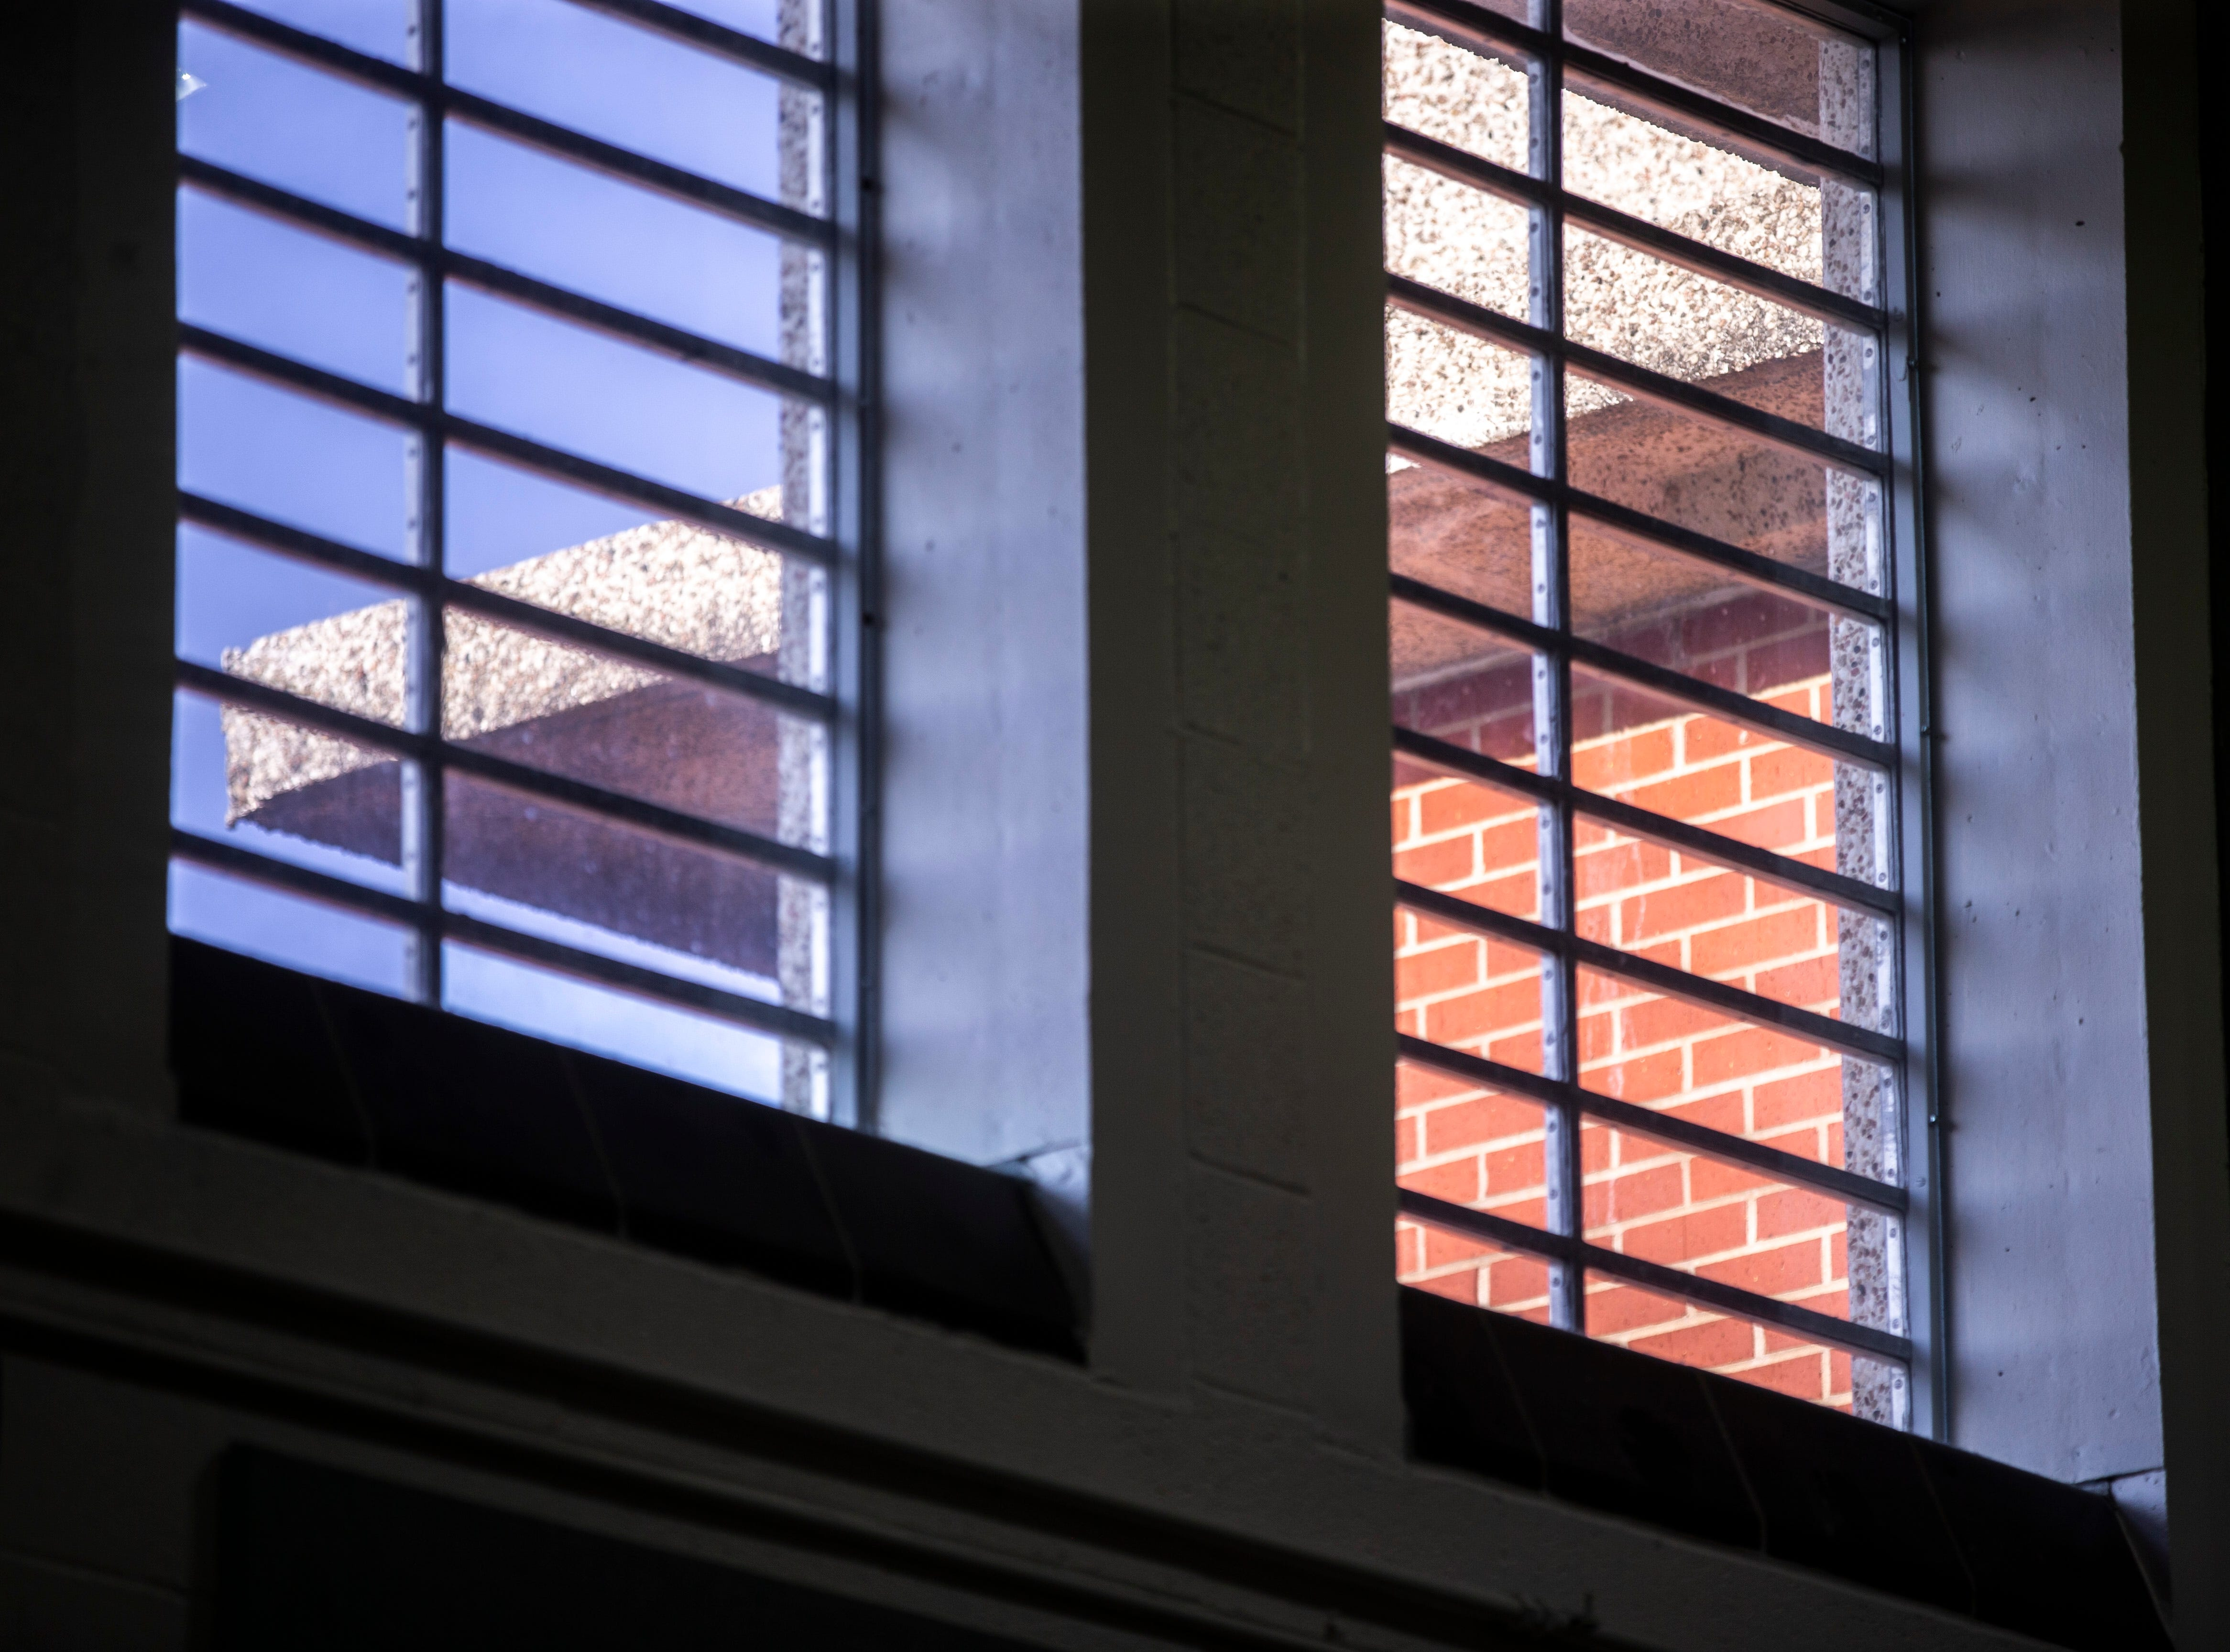 Light sines on the brick of the building outside a window in the gym during an Oakdale Community Choir practice on Tuesday, April 16, 2019, at Oakdale Prison in Coralville, Iowa.